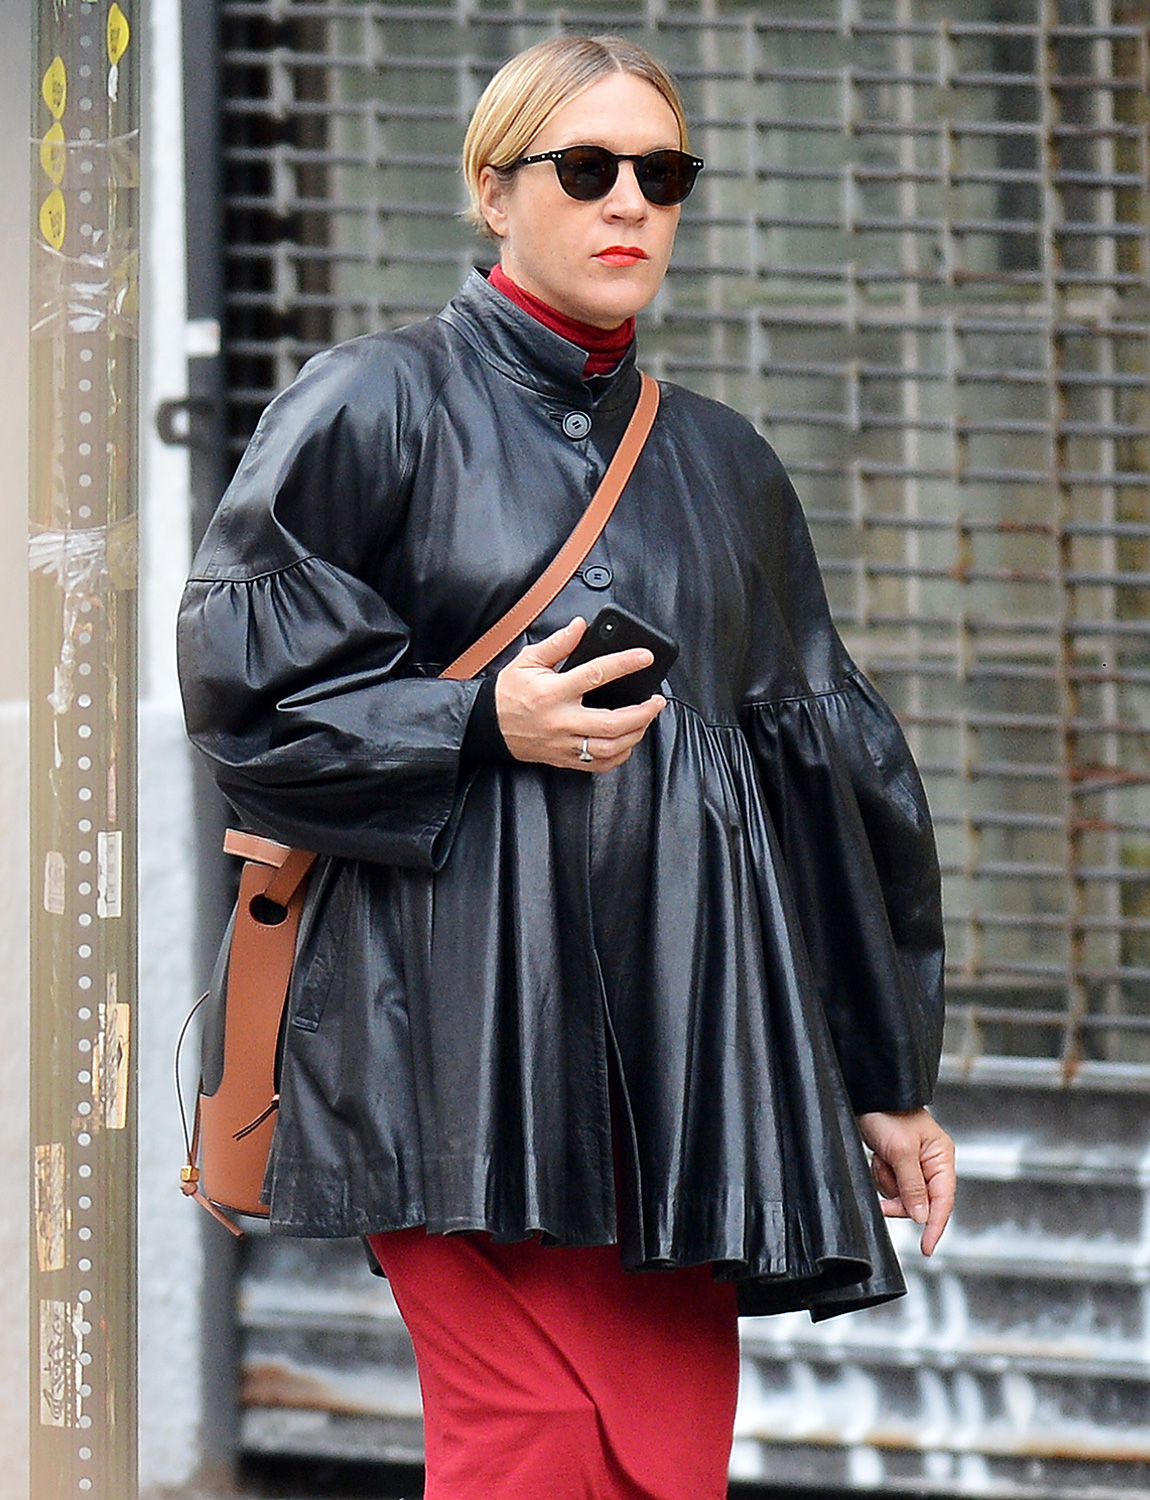 Chloe Sevigny is spotted out on a stroll in New York City